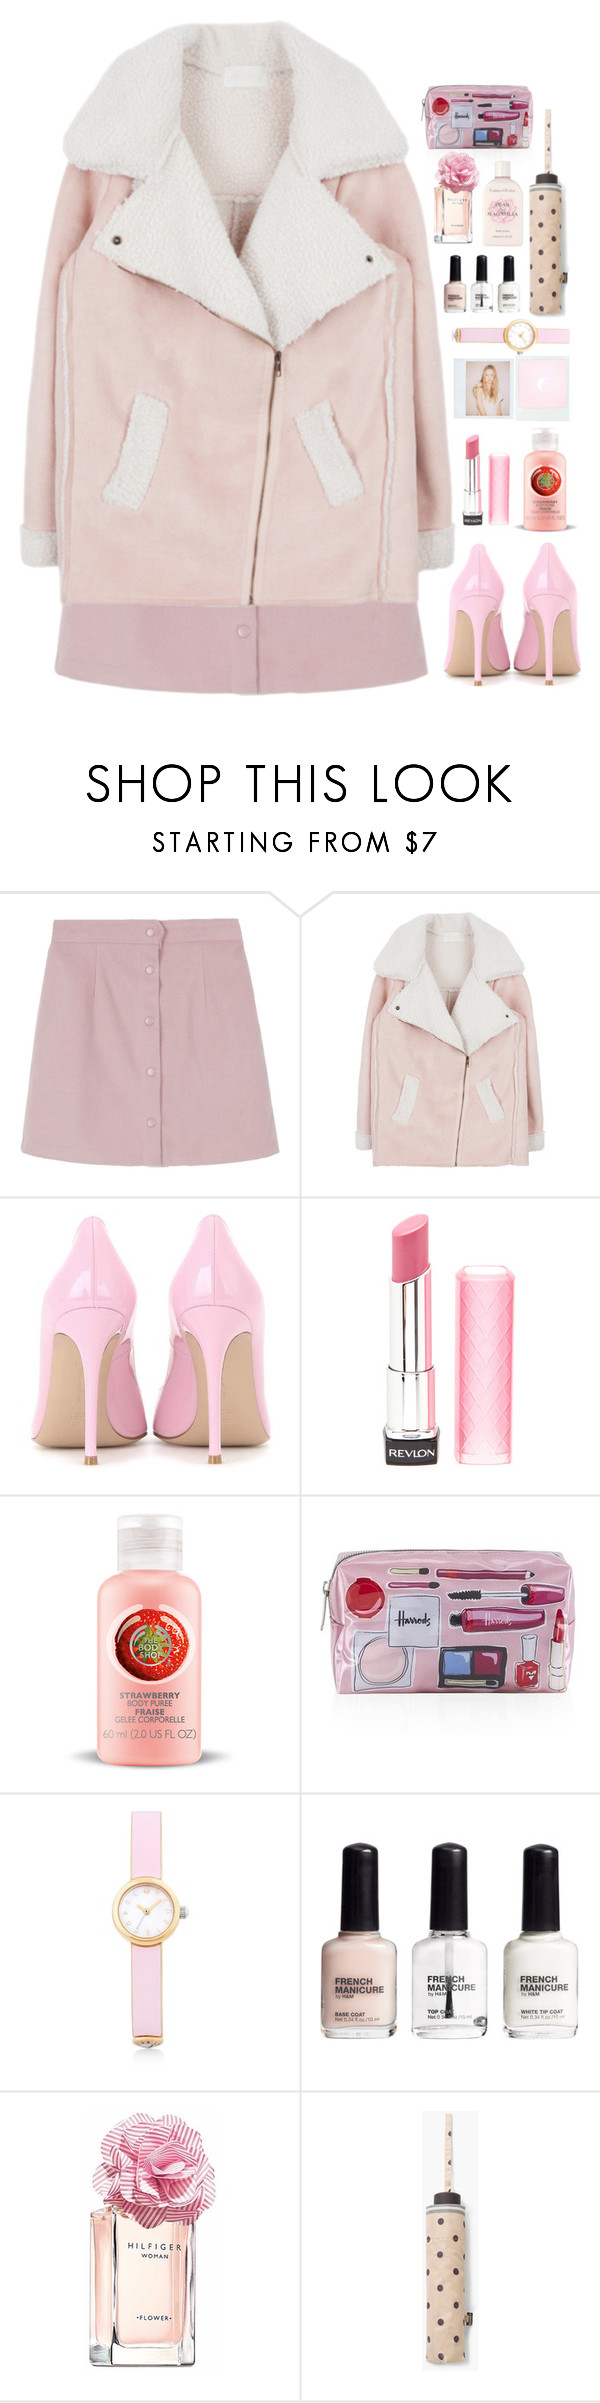 """""""▐ #22▐"""" by songjieun ❤ liked on Polyvore featuring Gianvito Rossi, Revlon, Harrods, Henri Bendel, H&M, Tommy Hilfiger, MANGO and Crabtree & Evelyn"""